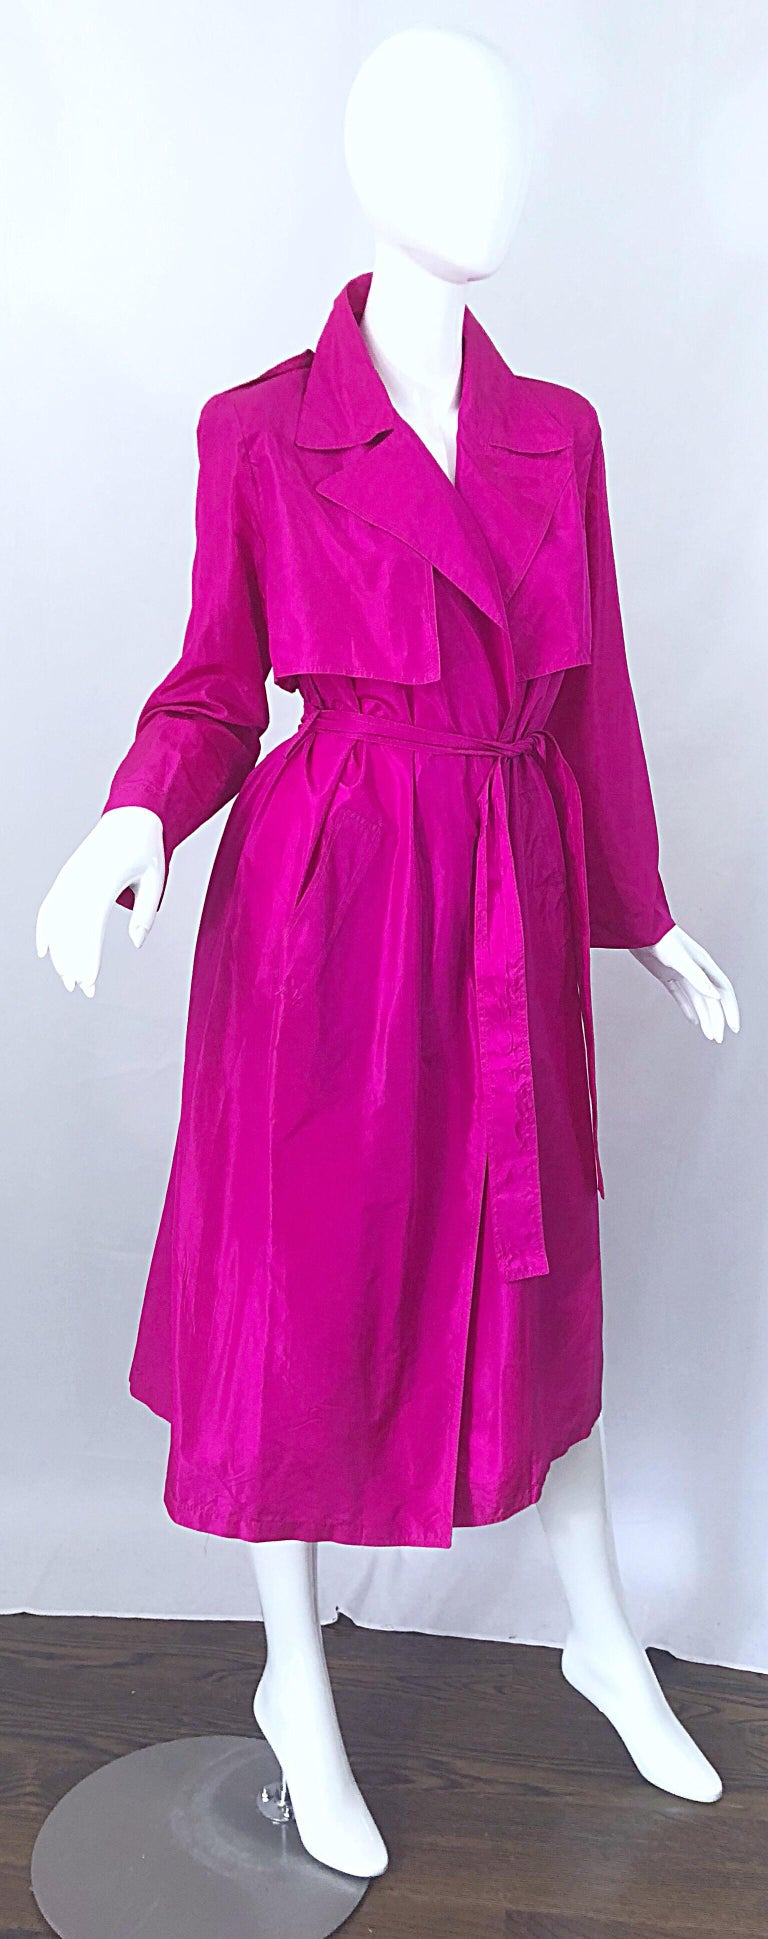 Vintage Vicky Tiel Couture 80s Hot Pink Fuchsia Silk 1980s Trecnch Jacket Dress For Sale 2